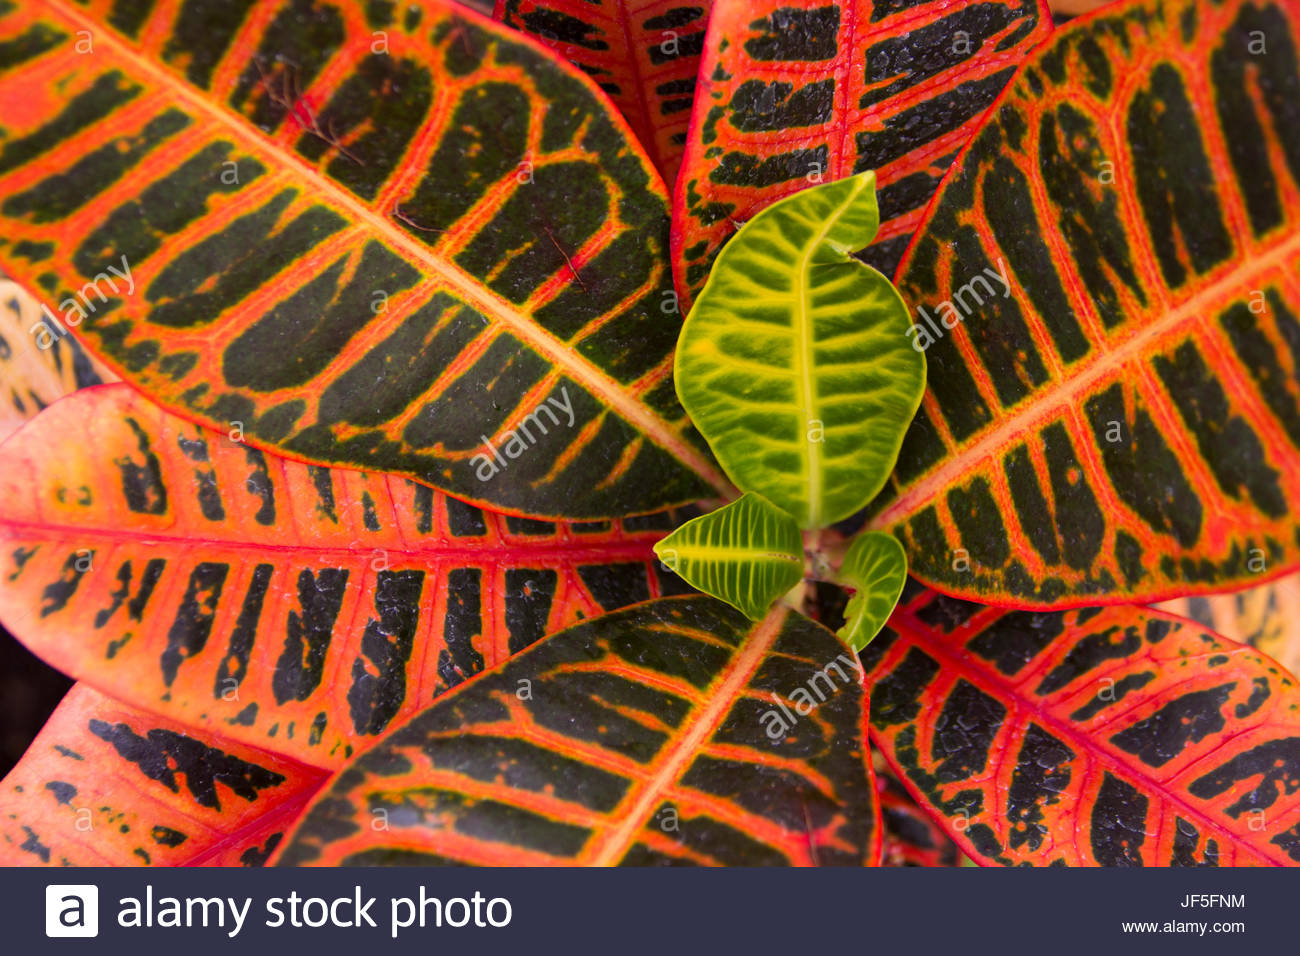 Striking natural patterns in Croton leaves. - Stock Image